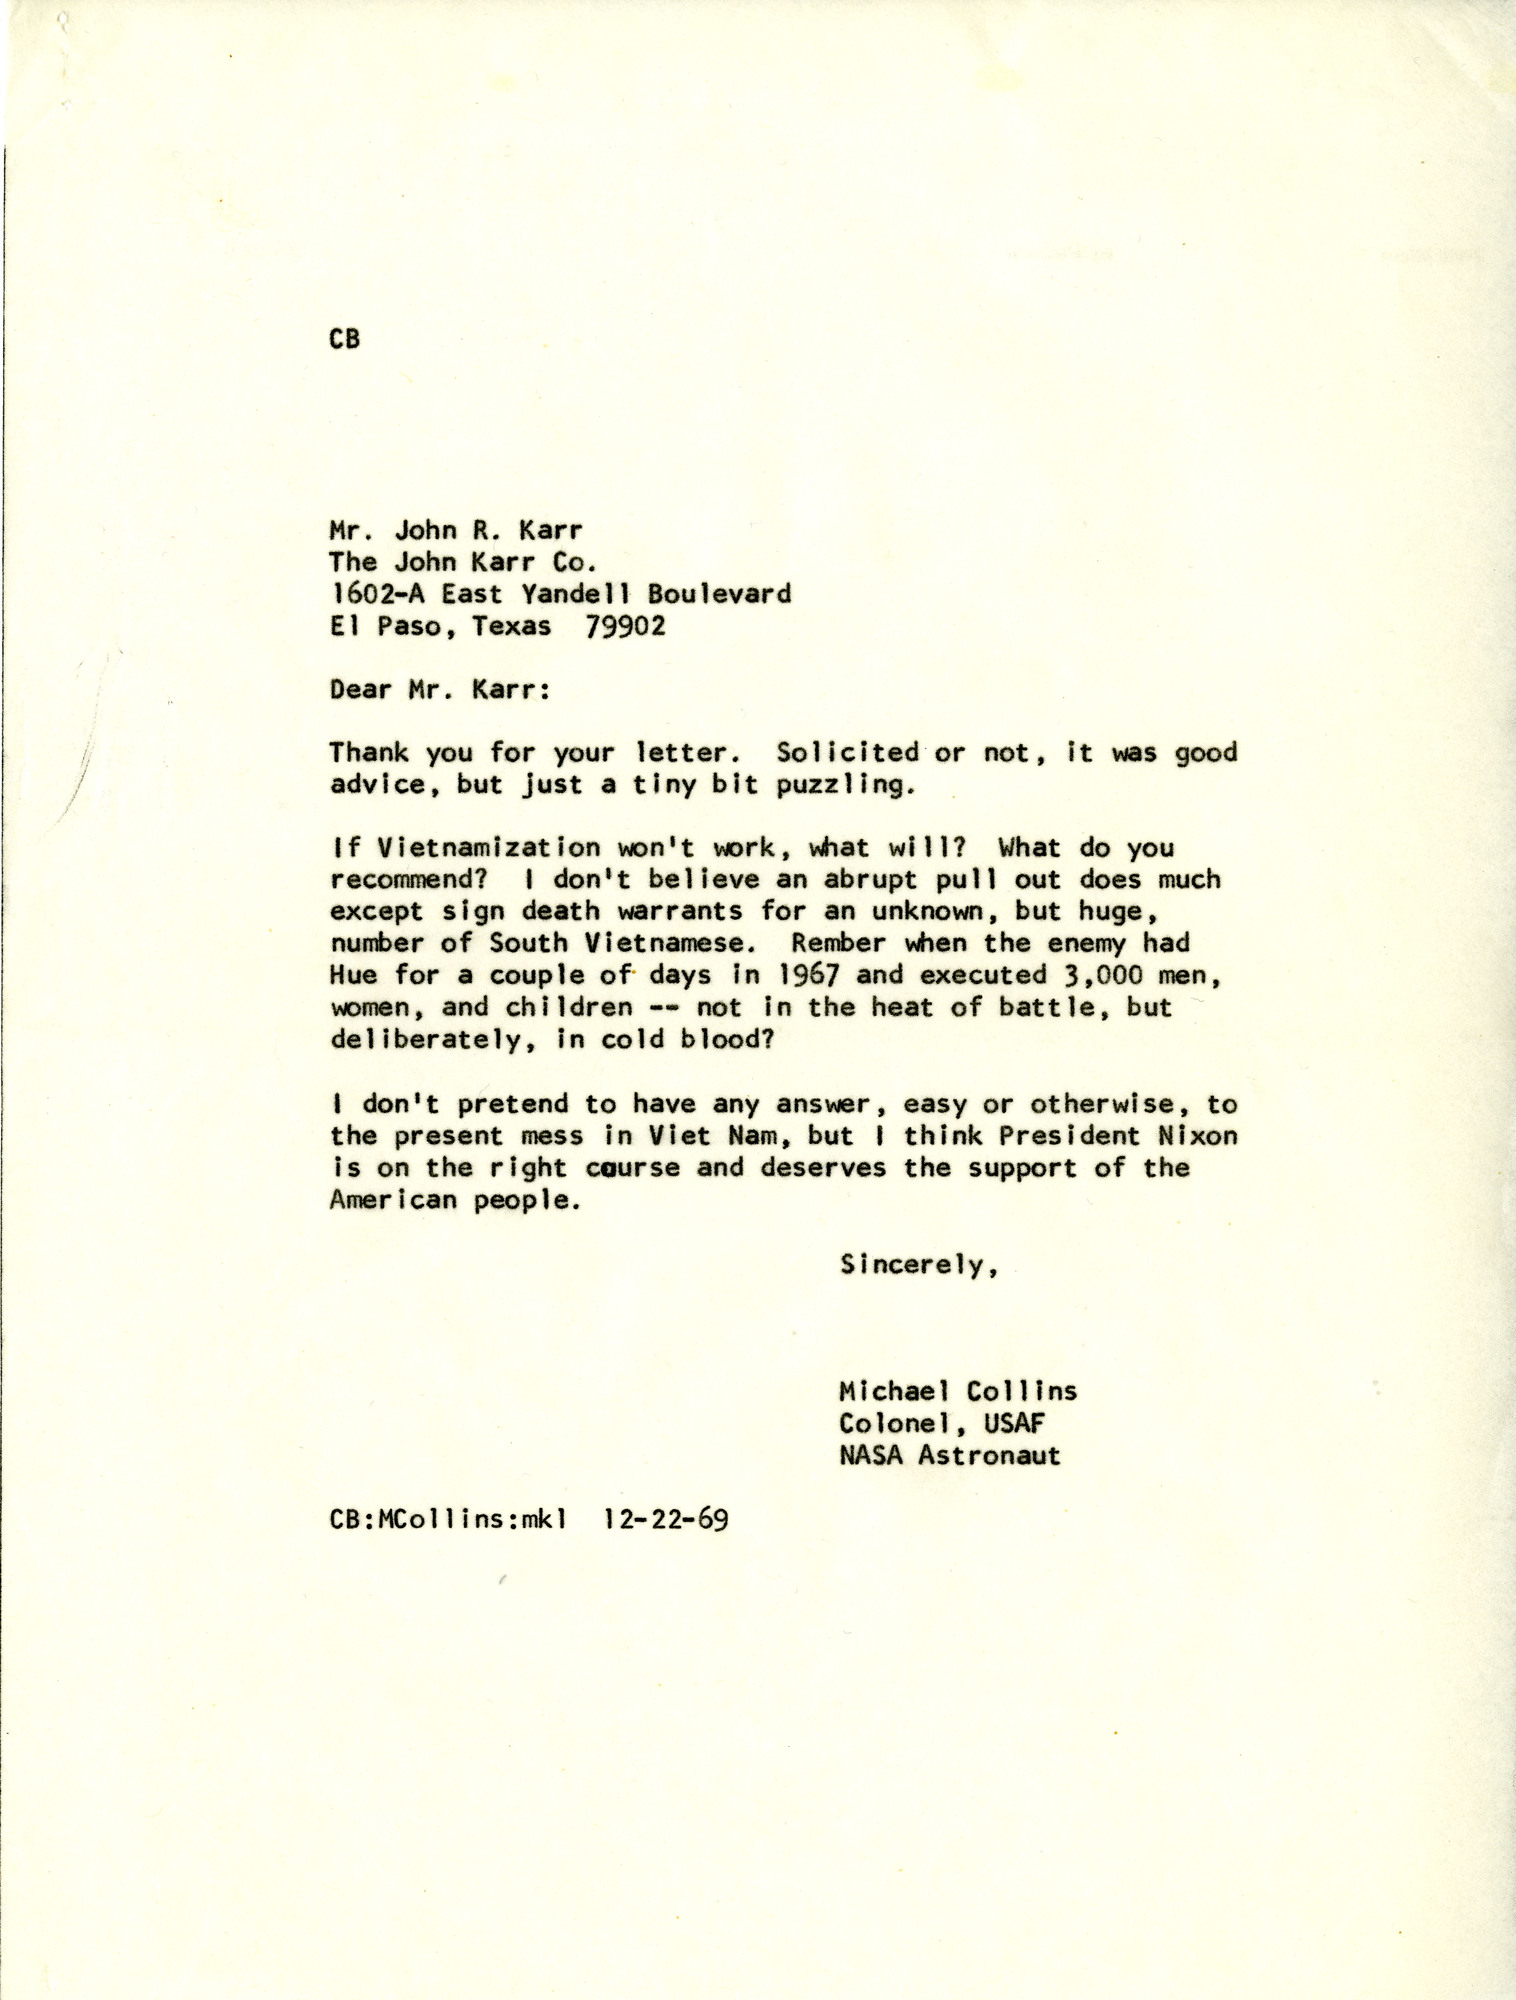 http://spec.lib.vt.edu/pickup/Omeka_upload/Ms1989-029_B18_F1_MichaelCollins_Letter_1969_1222.jpg